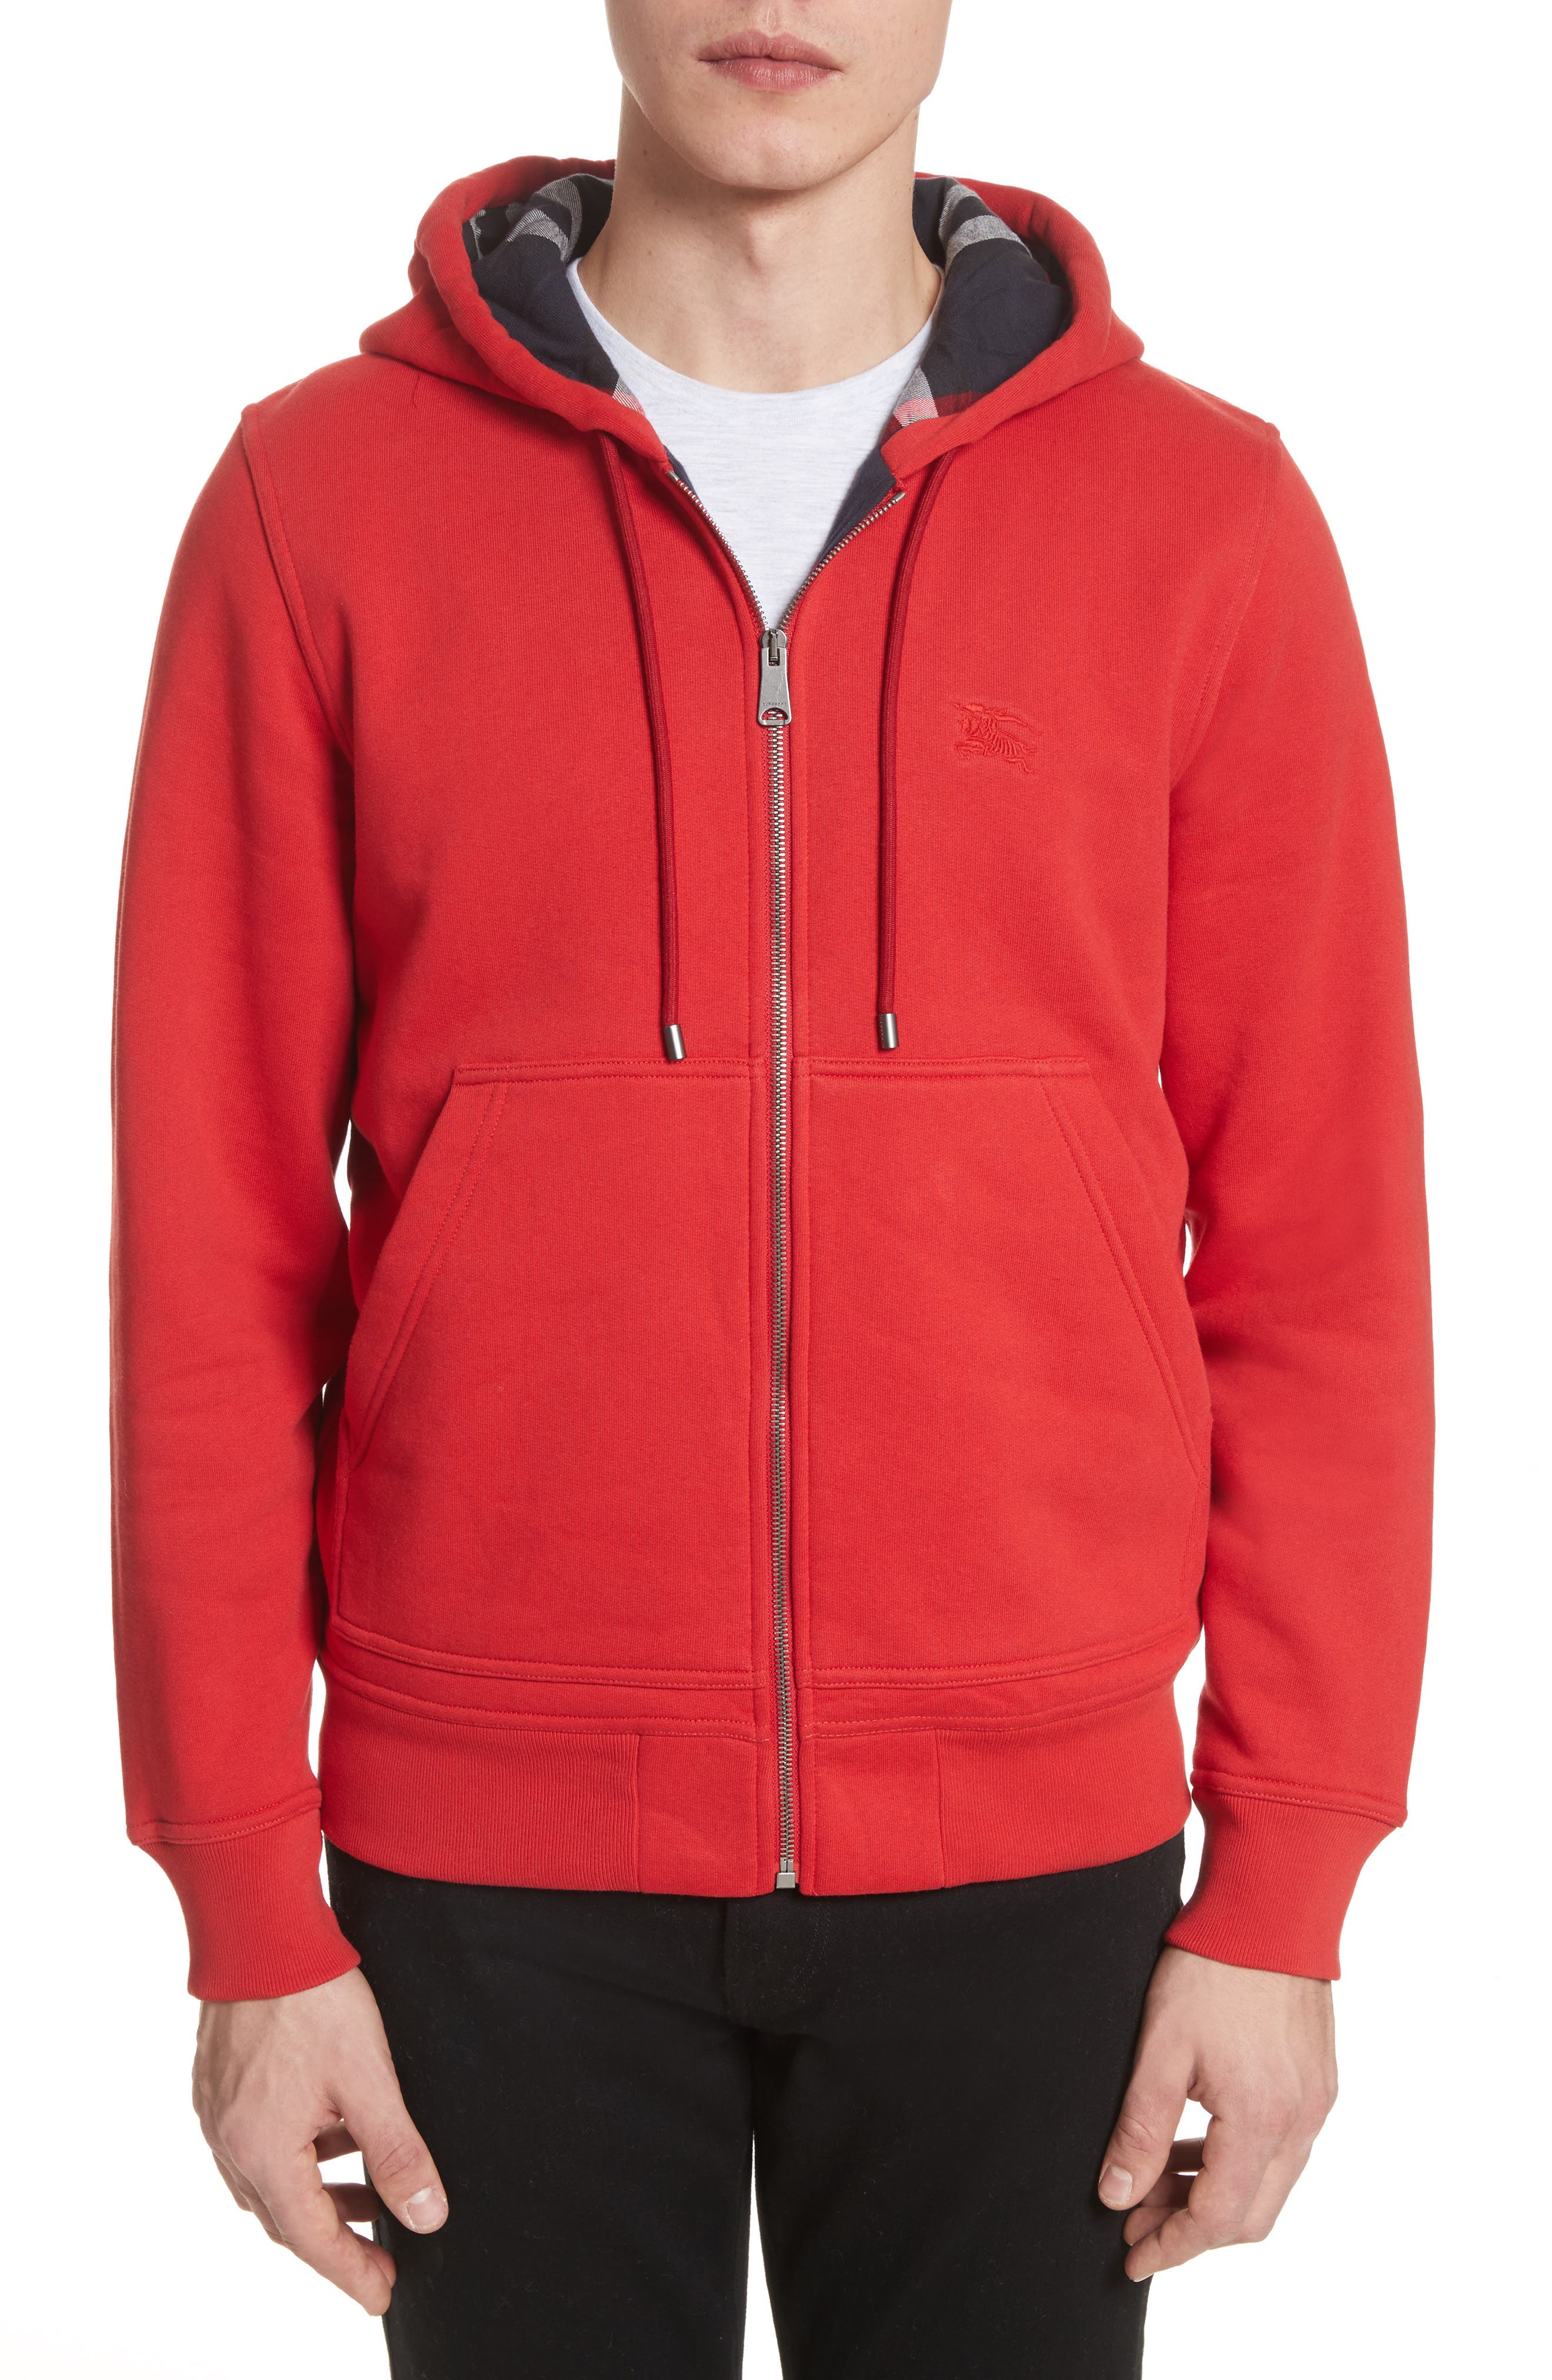 burberry hoodie mens orange